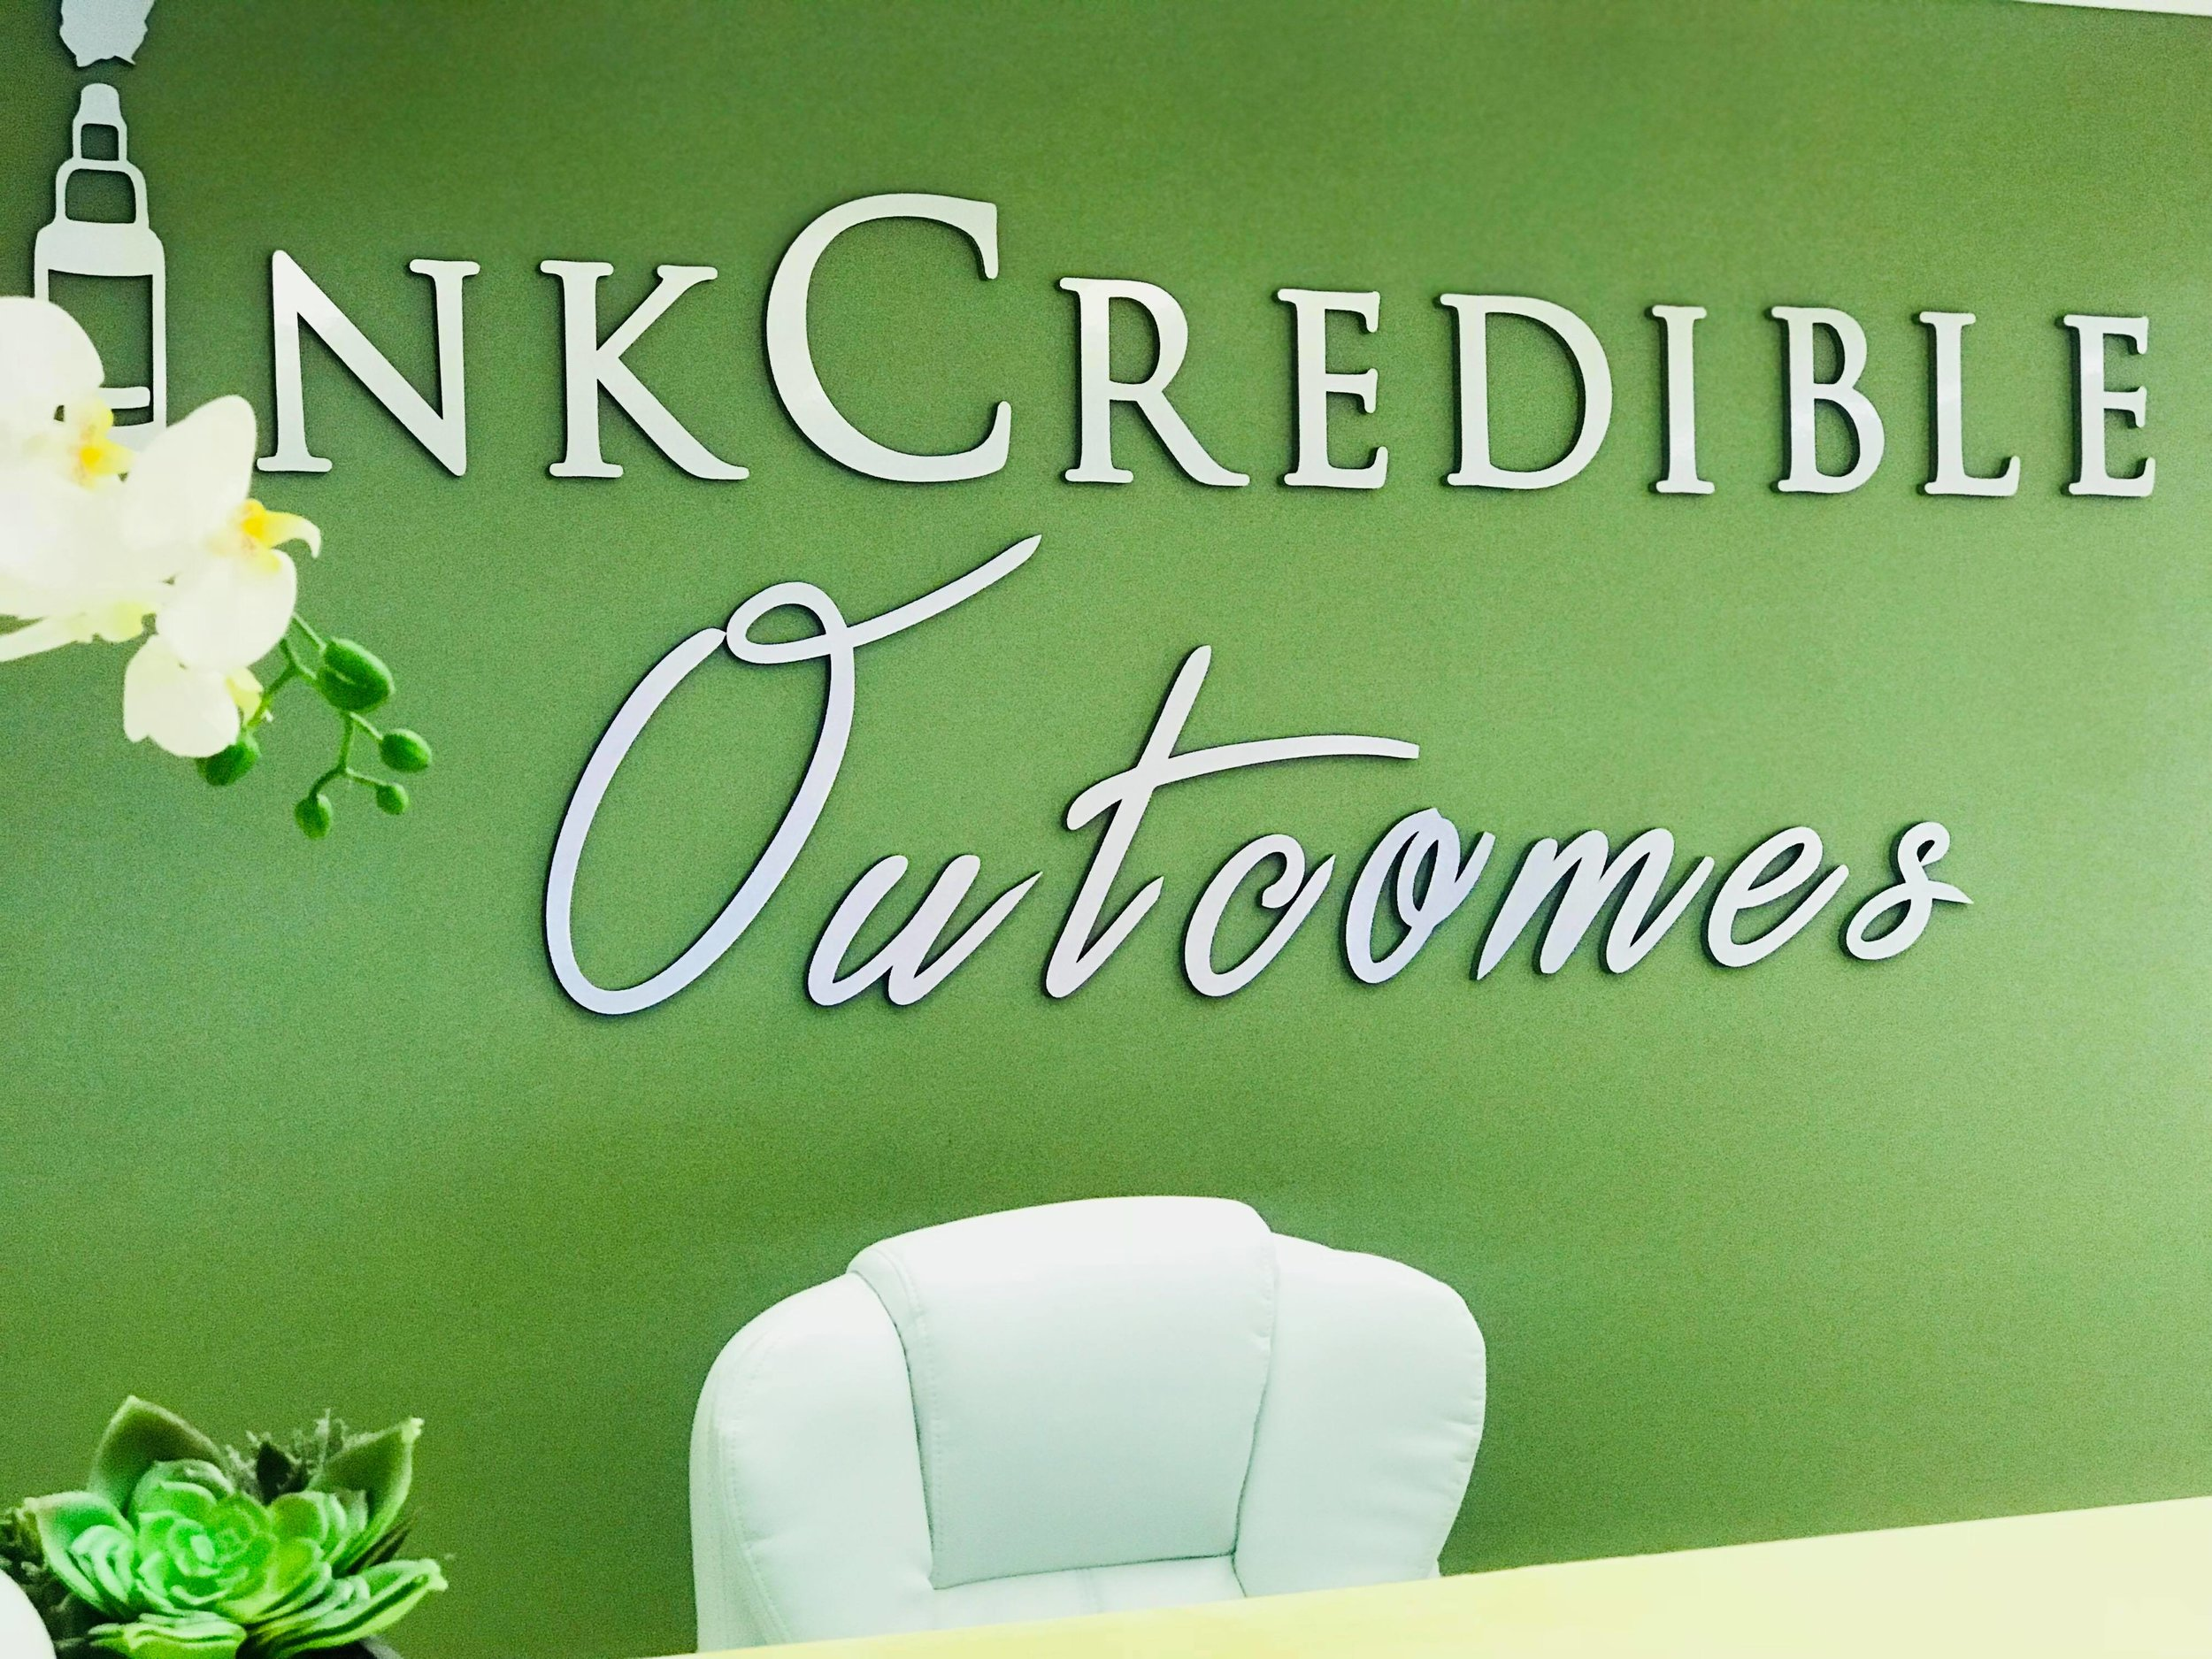 INKcREDIBLE oUTCOMES - cERTIFIED mEDICAL AND cOSMETIC tATTOO aRTISTS. mICROBLADING, sCAR cAMOUFLAGE, 3d aREOLA, sKIN rEPIGMENTATION, hAIR tRANSPLANT, AND mORE.